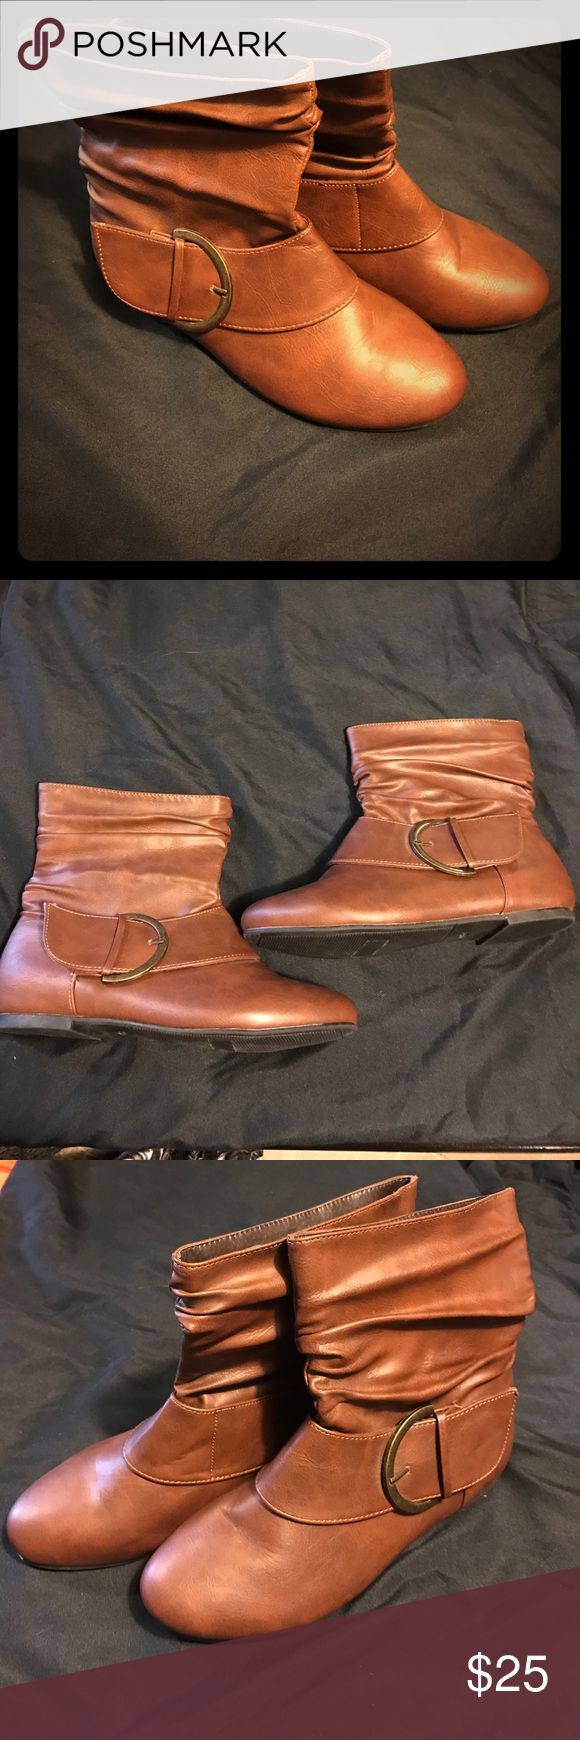 Brown boots size 8 Adorable brown boots size 8. Have a buckle on the outside. They are narrow which is why I'm selling them. Only worn around the house. In like new condition Maurices Shoes Ankle Boots & Booties